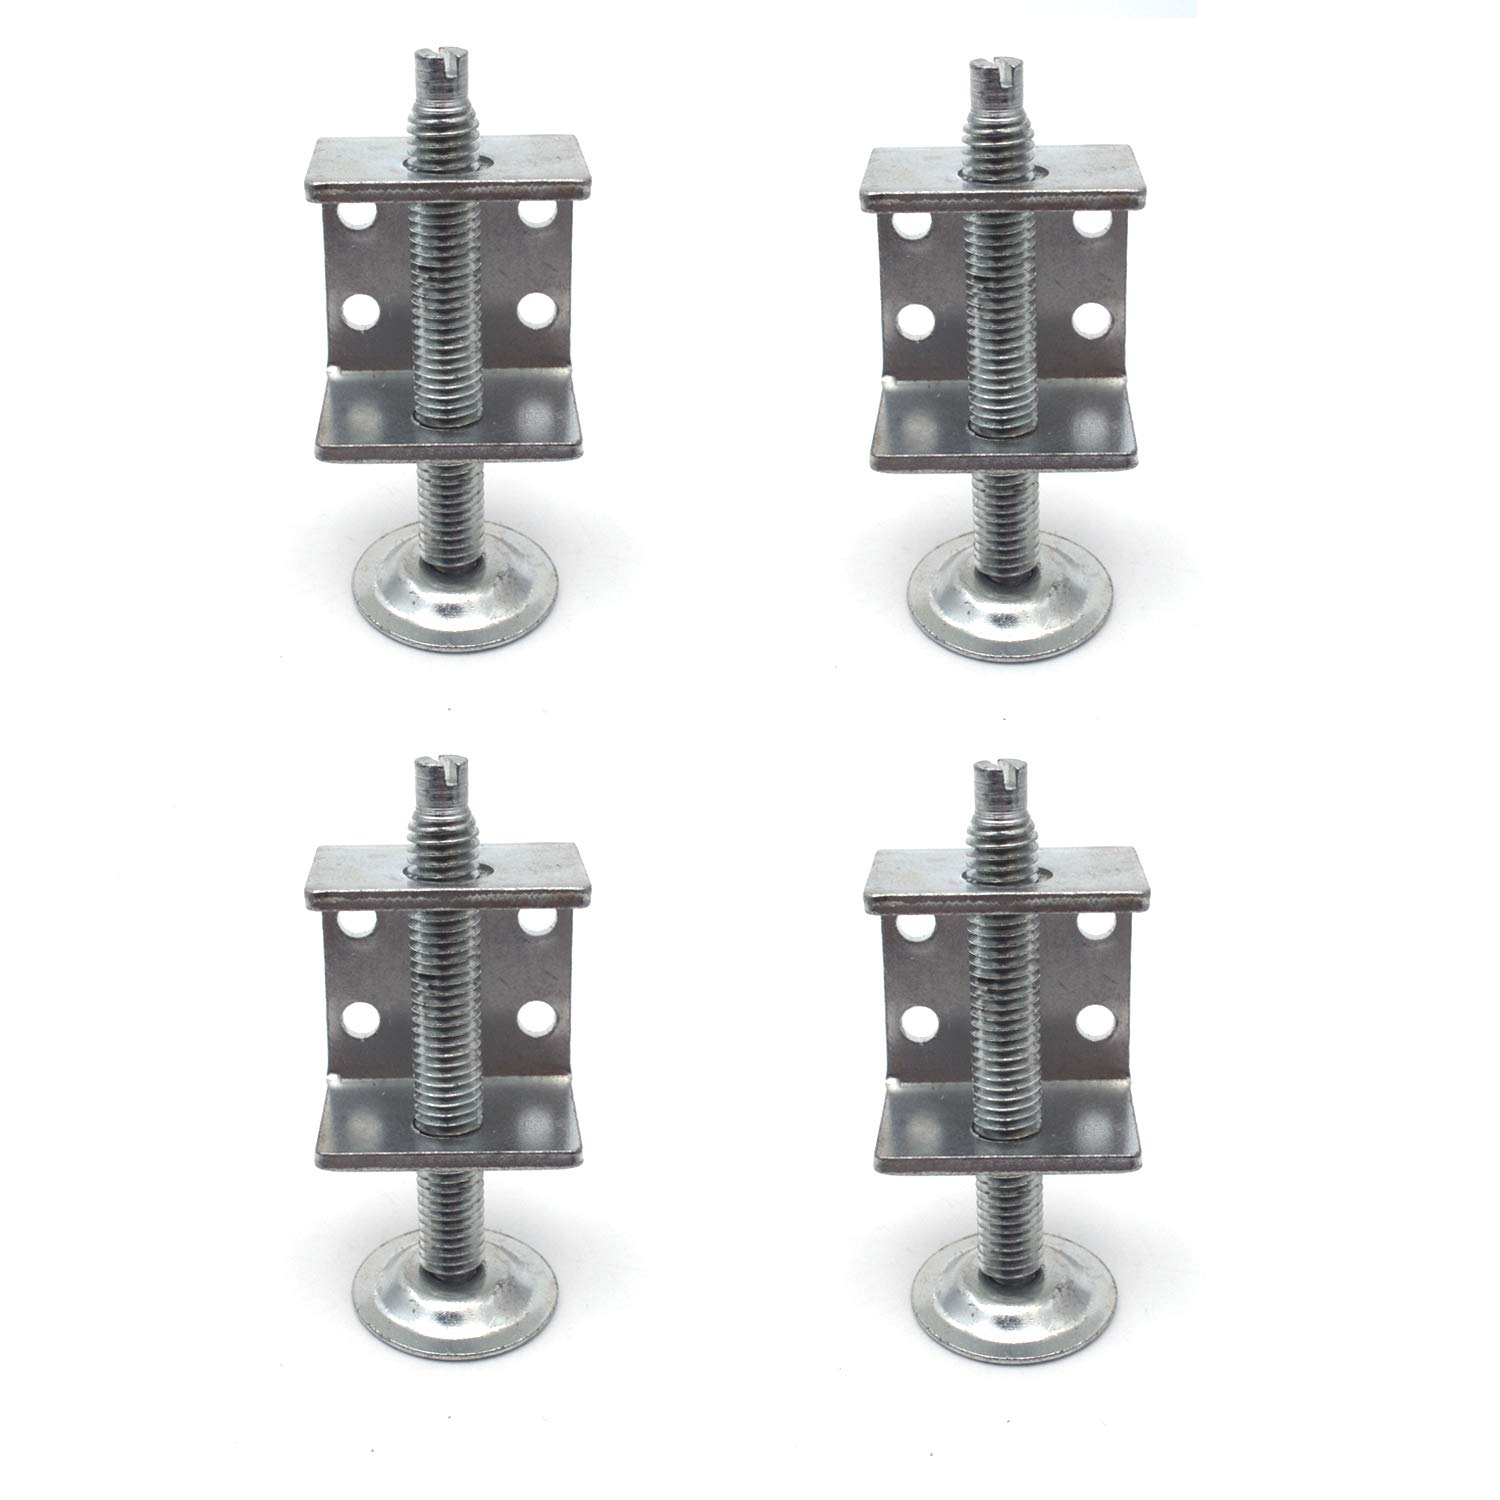 Antrader 4 Pack Table Chair Sofa Cabinet Adjustable Heavy-Duty Furniture Leg Leveler Furniture Accessory 8000 LB Capacity